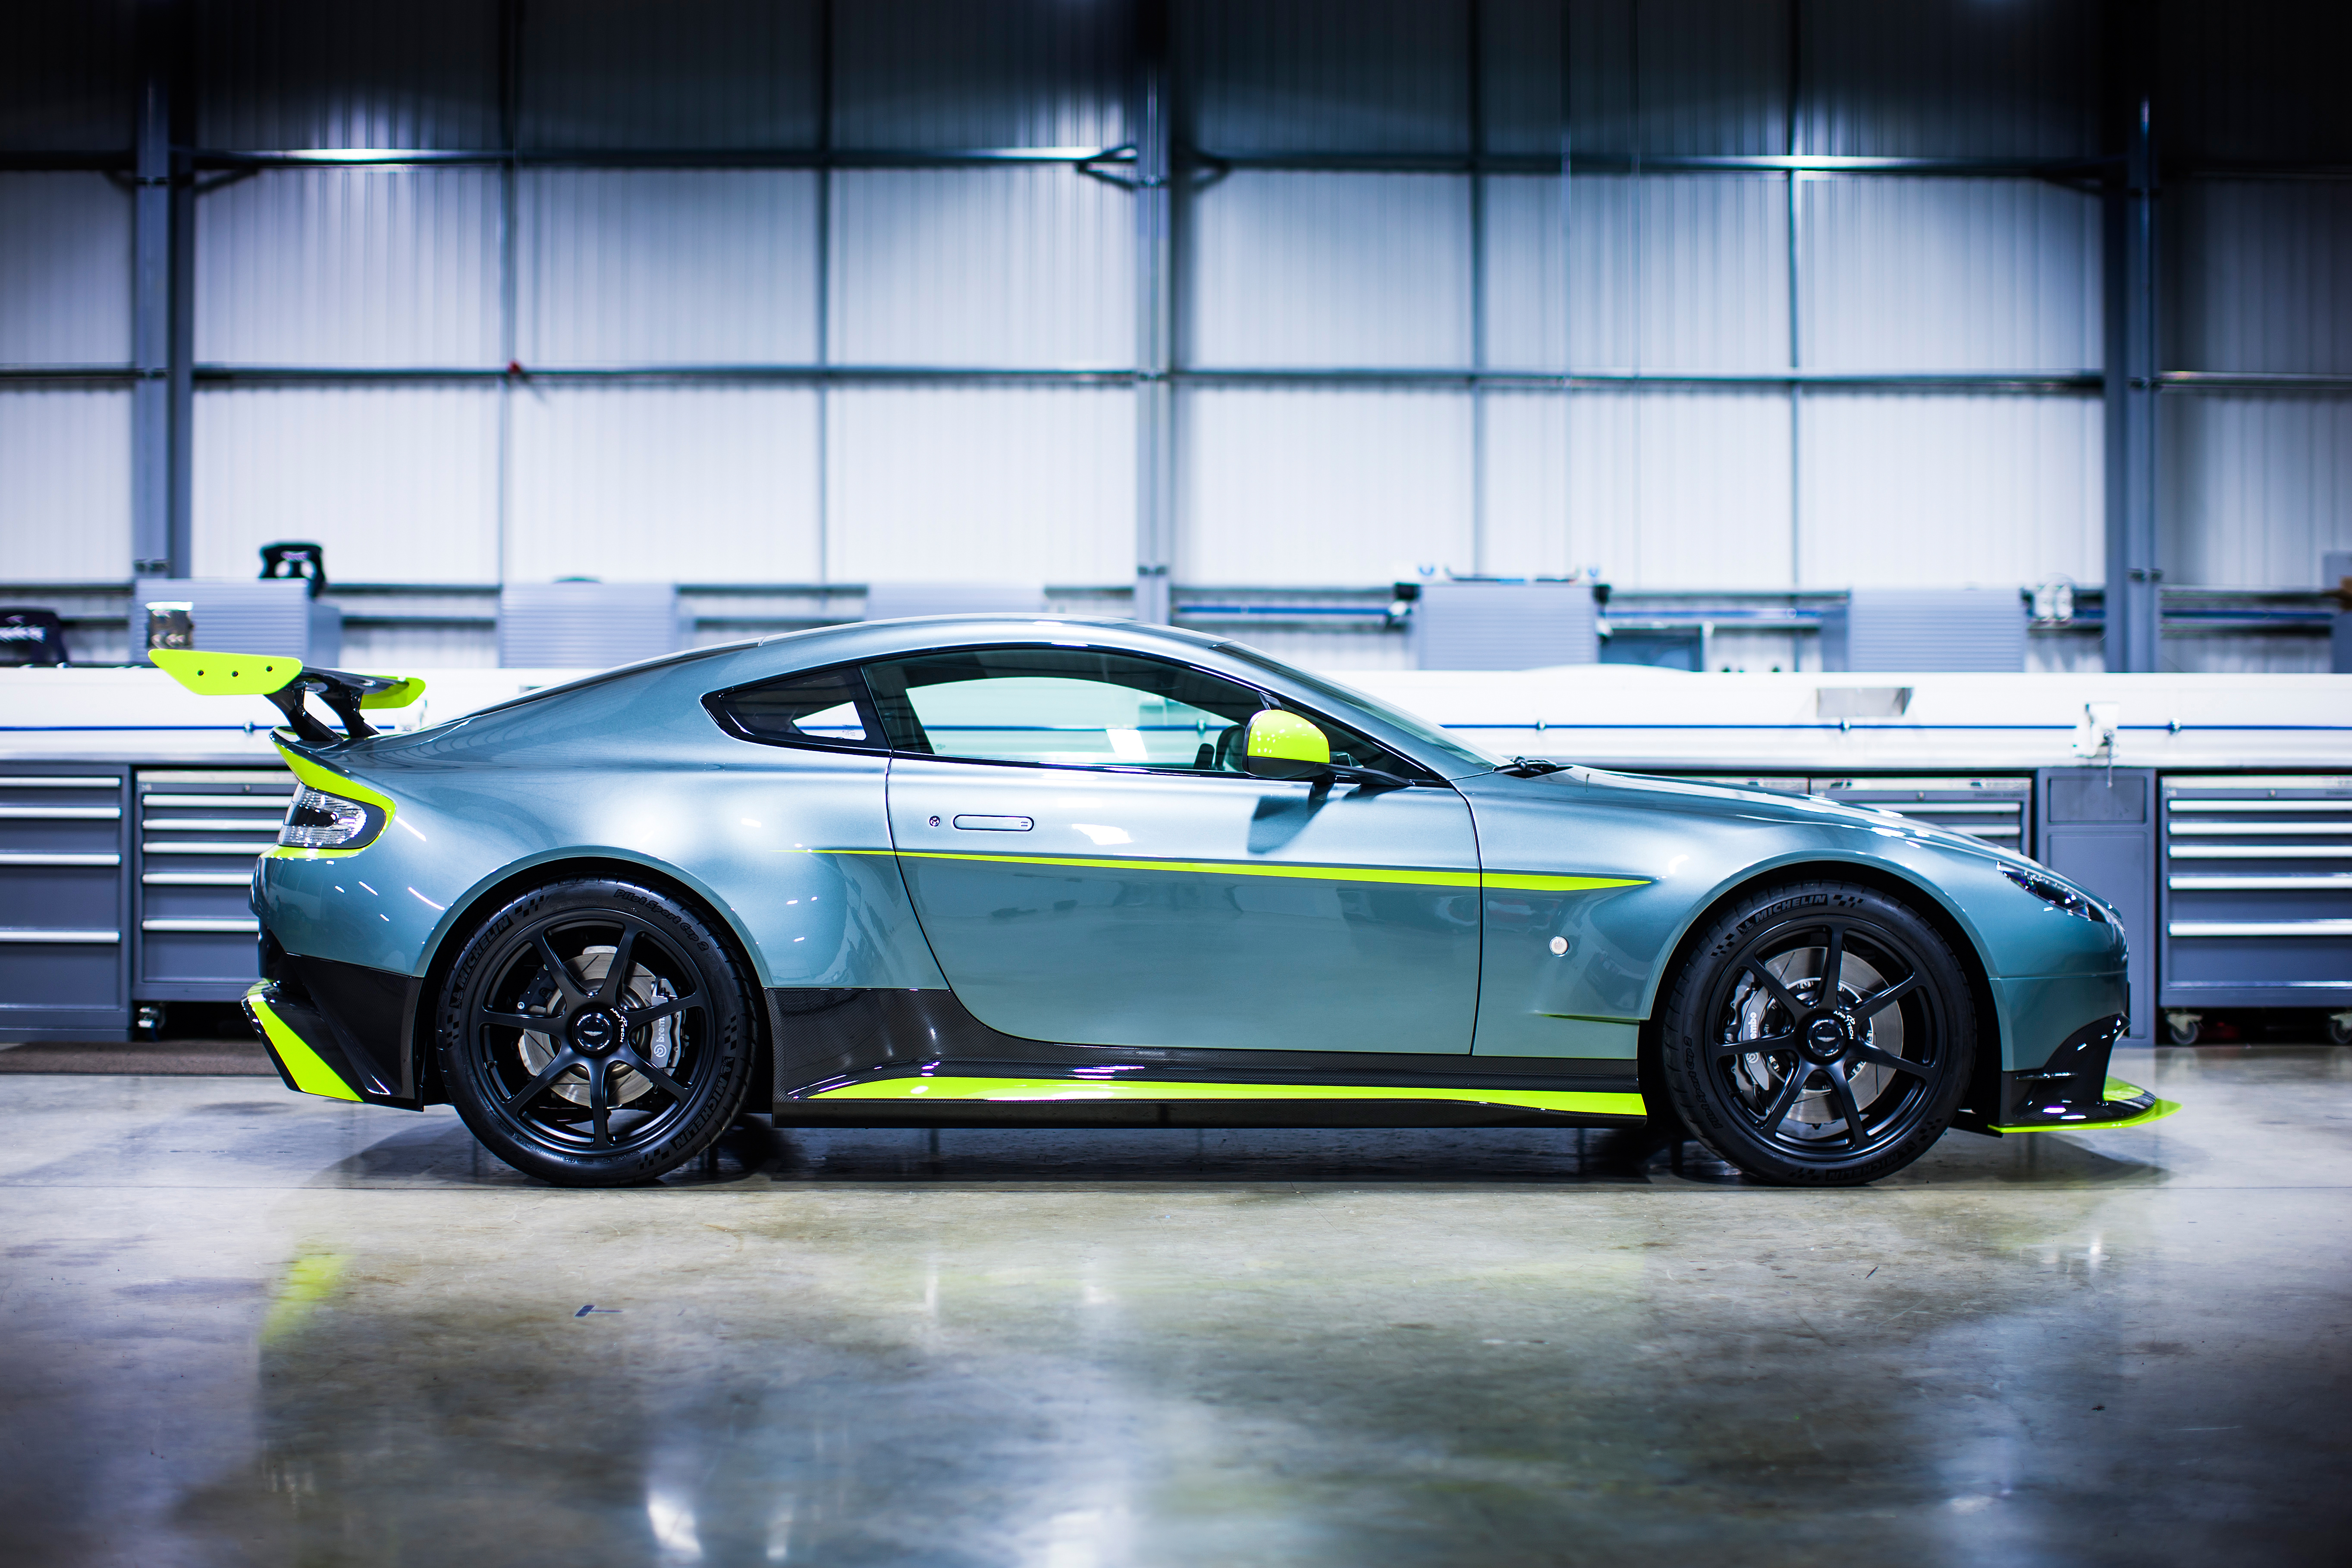 The Magnificent Aston Martin Vantage Gt8 Is A Road Legal Race Car